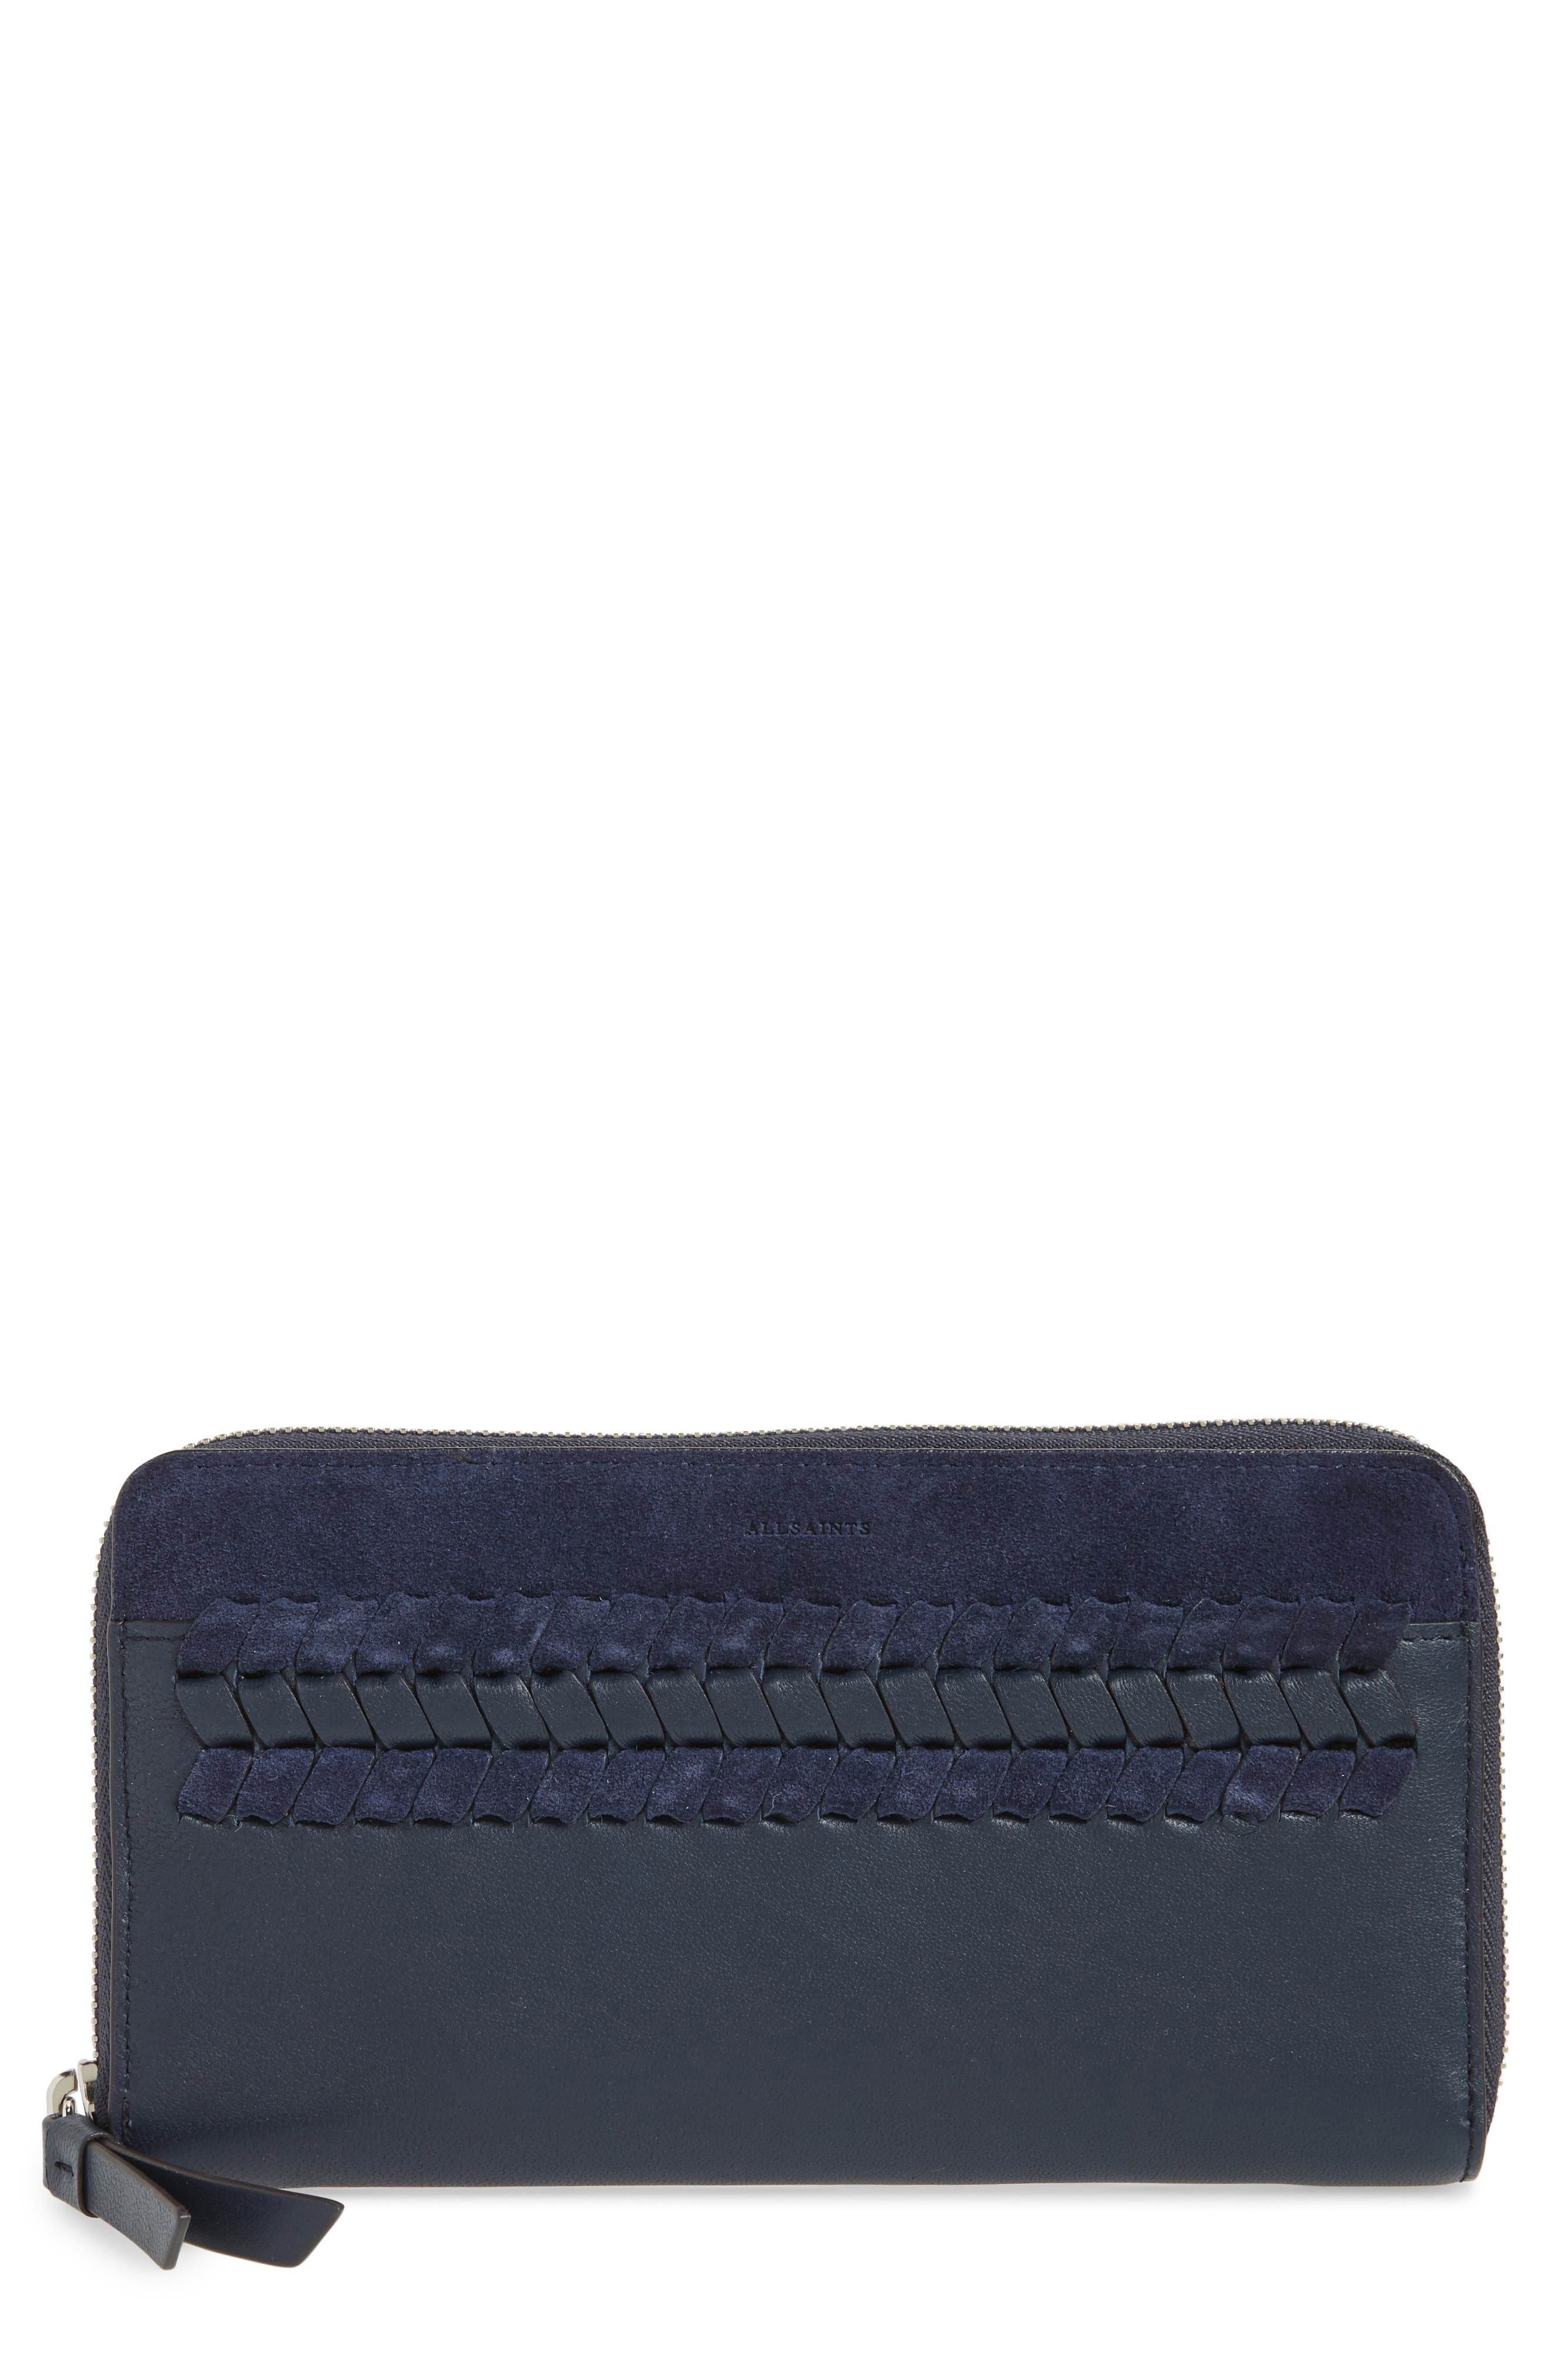 Ray Whip Leather & Suede Wallet,                             Main thumbnail 1, color,                             400